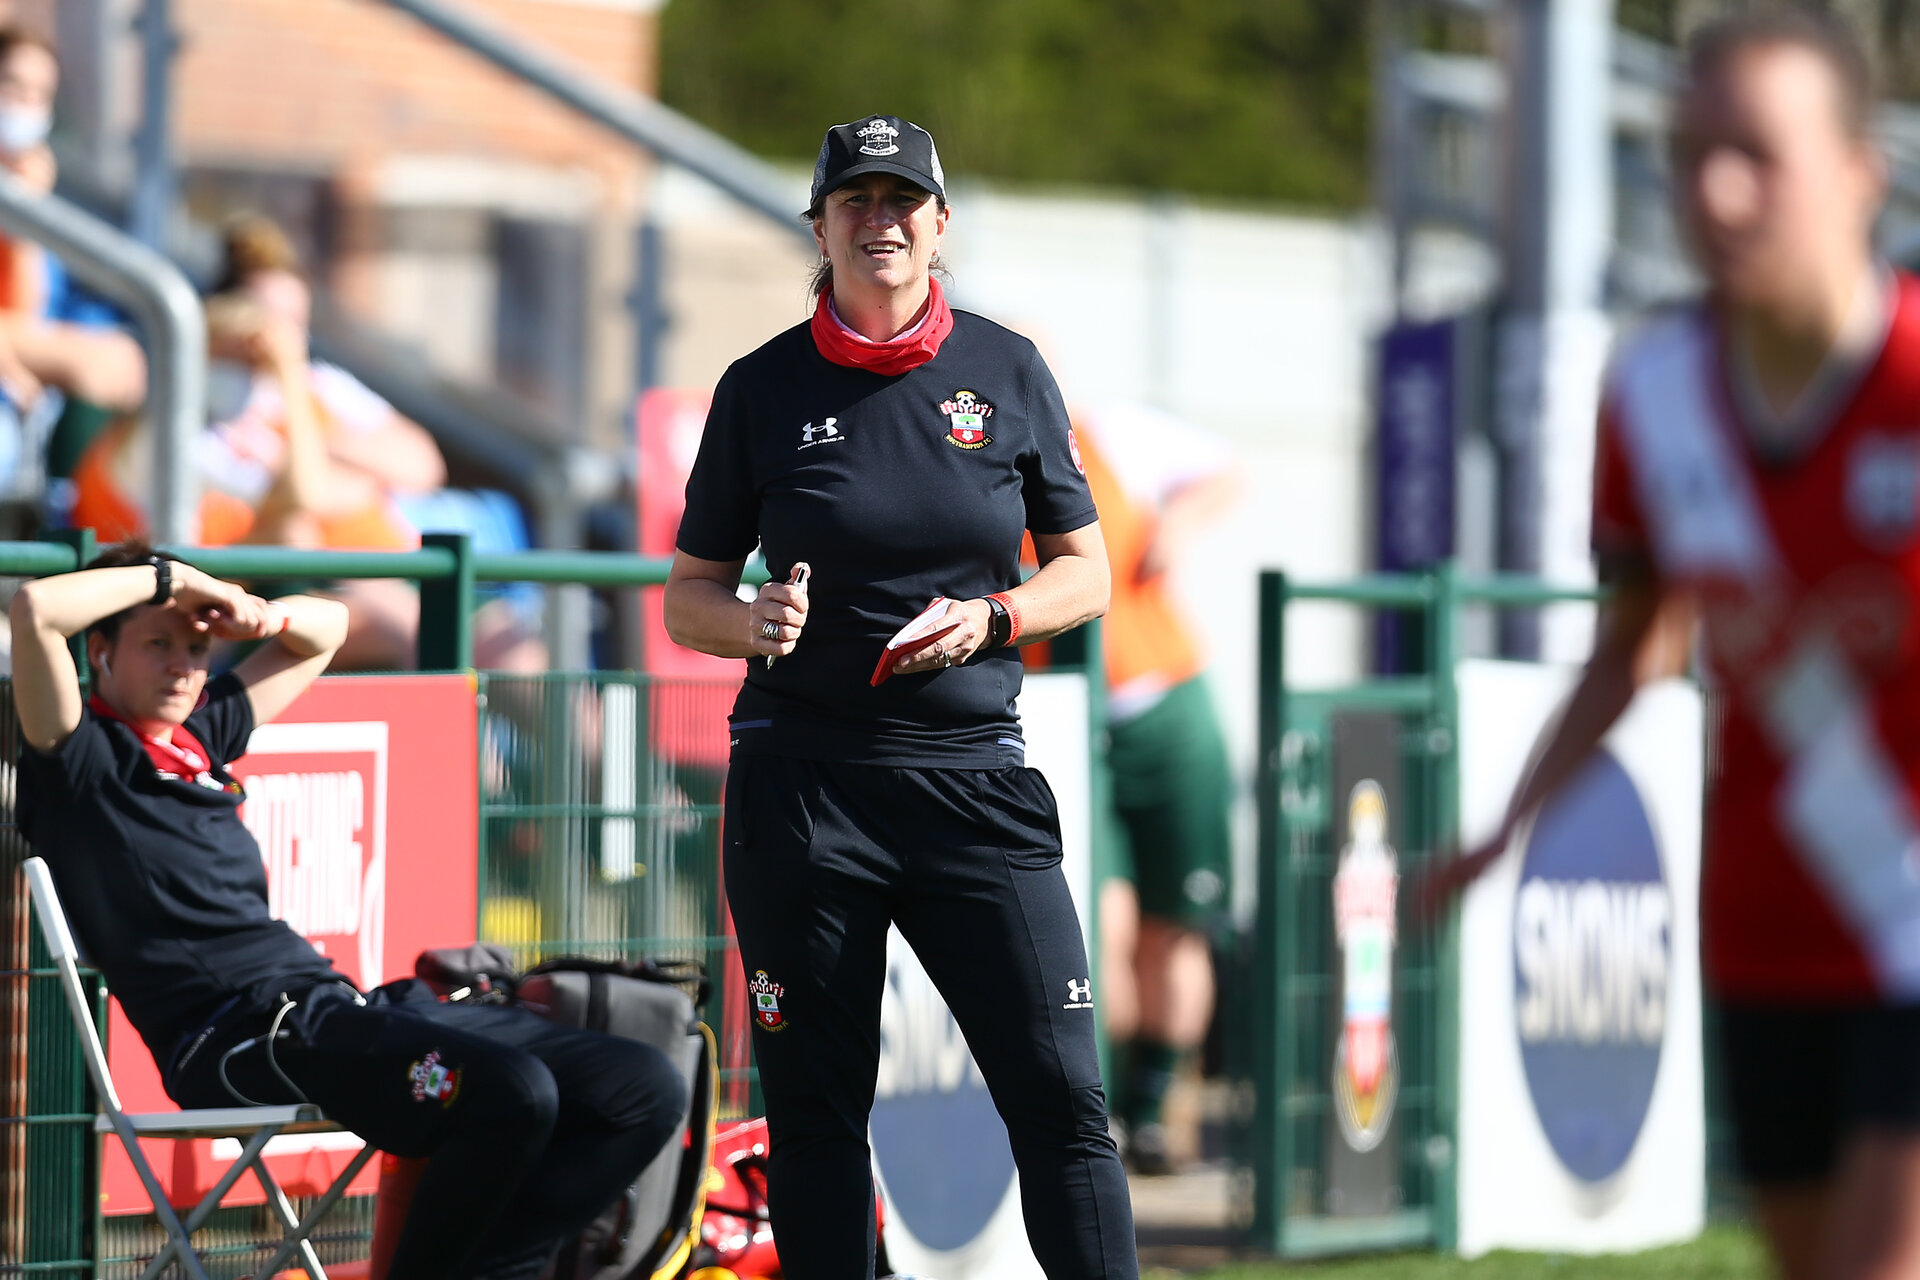 SOUTHAMPTON, ENGLAND - APRIL 04: Marieanne Spacey-Cale Southampton women manager during the Vitality Women's FA Cup second round match between Southampton Women and Plymouth Argyle Women at The Snows Stadium on April 04, 2021 in Southampton, England. (Photo by Isabelle Field/Southampton FC via Getty Images)